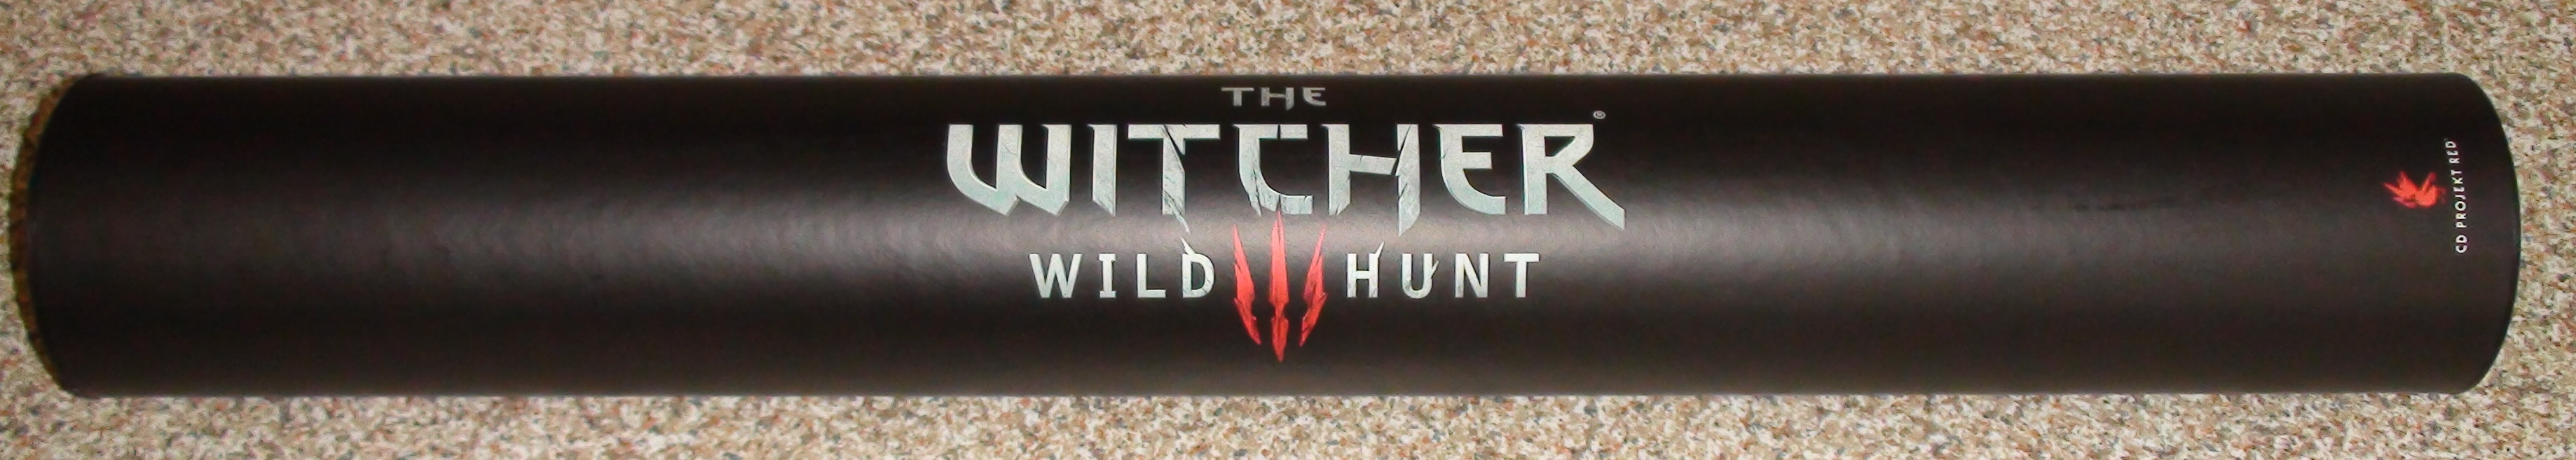 The Witcher 3 - CD Projekt Red